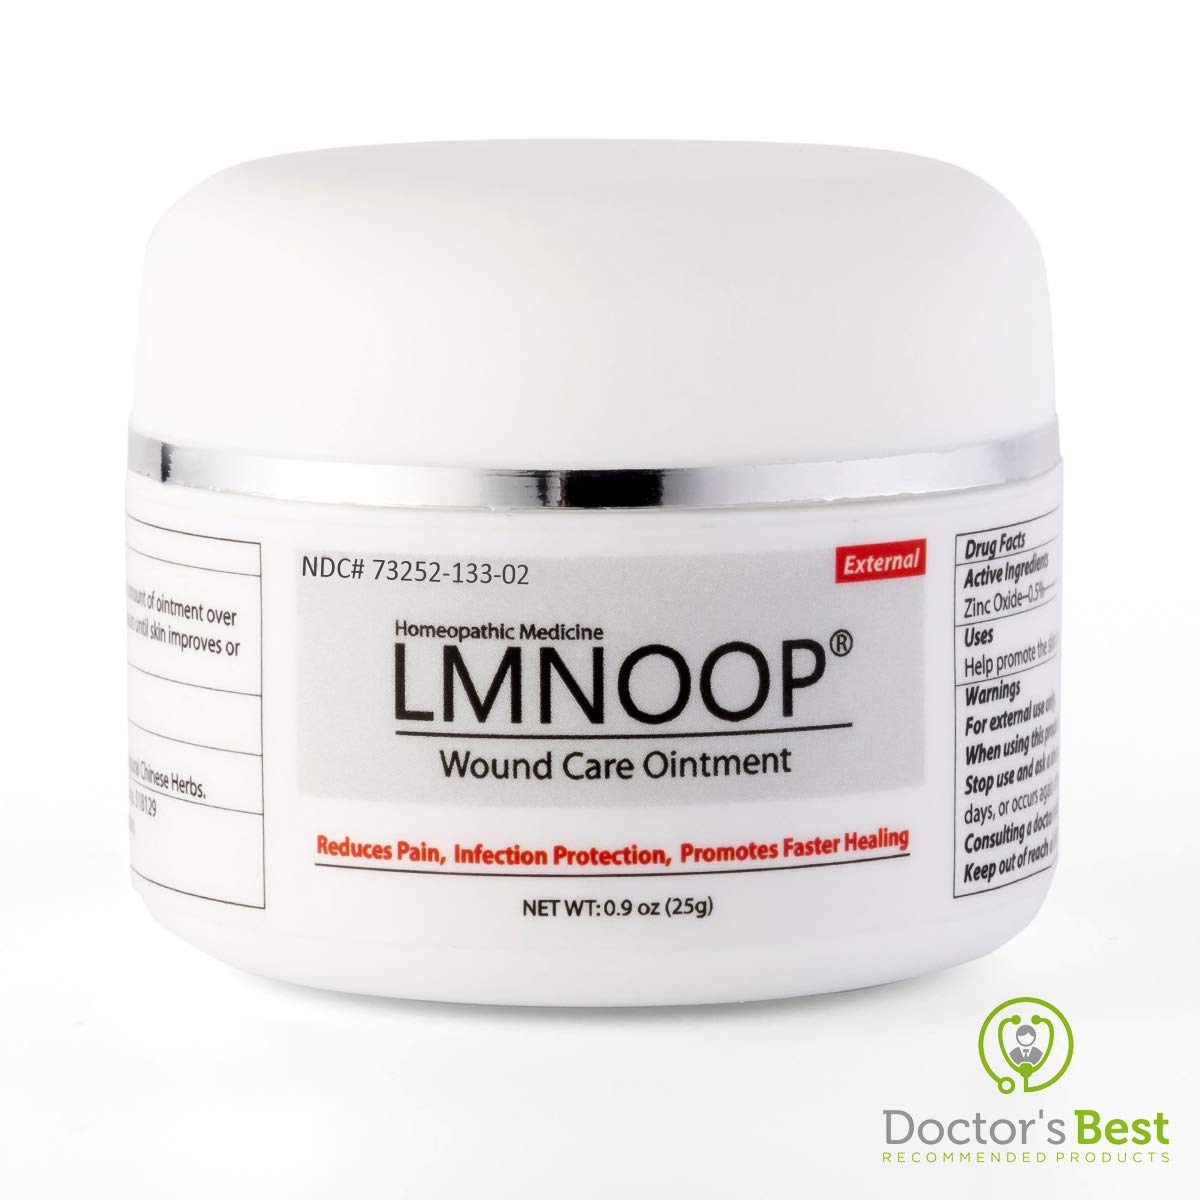 LMNOOP® Wound Care - Bed Sore Cream, Organic Bedsore Ointment, Bed Sores Treatment, Faster Wound Healing & 24 hr Infection Protection Medication for Bedsores, Pressure Sores, Diabetic & Venous Ulcers by LMNOOP